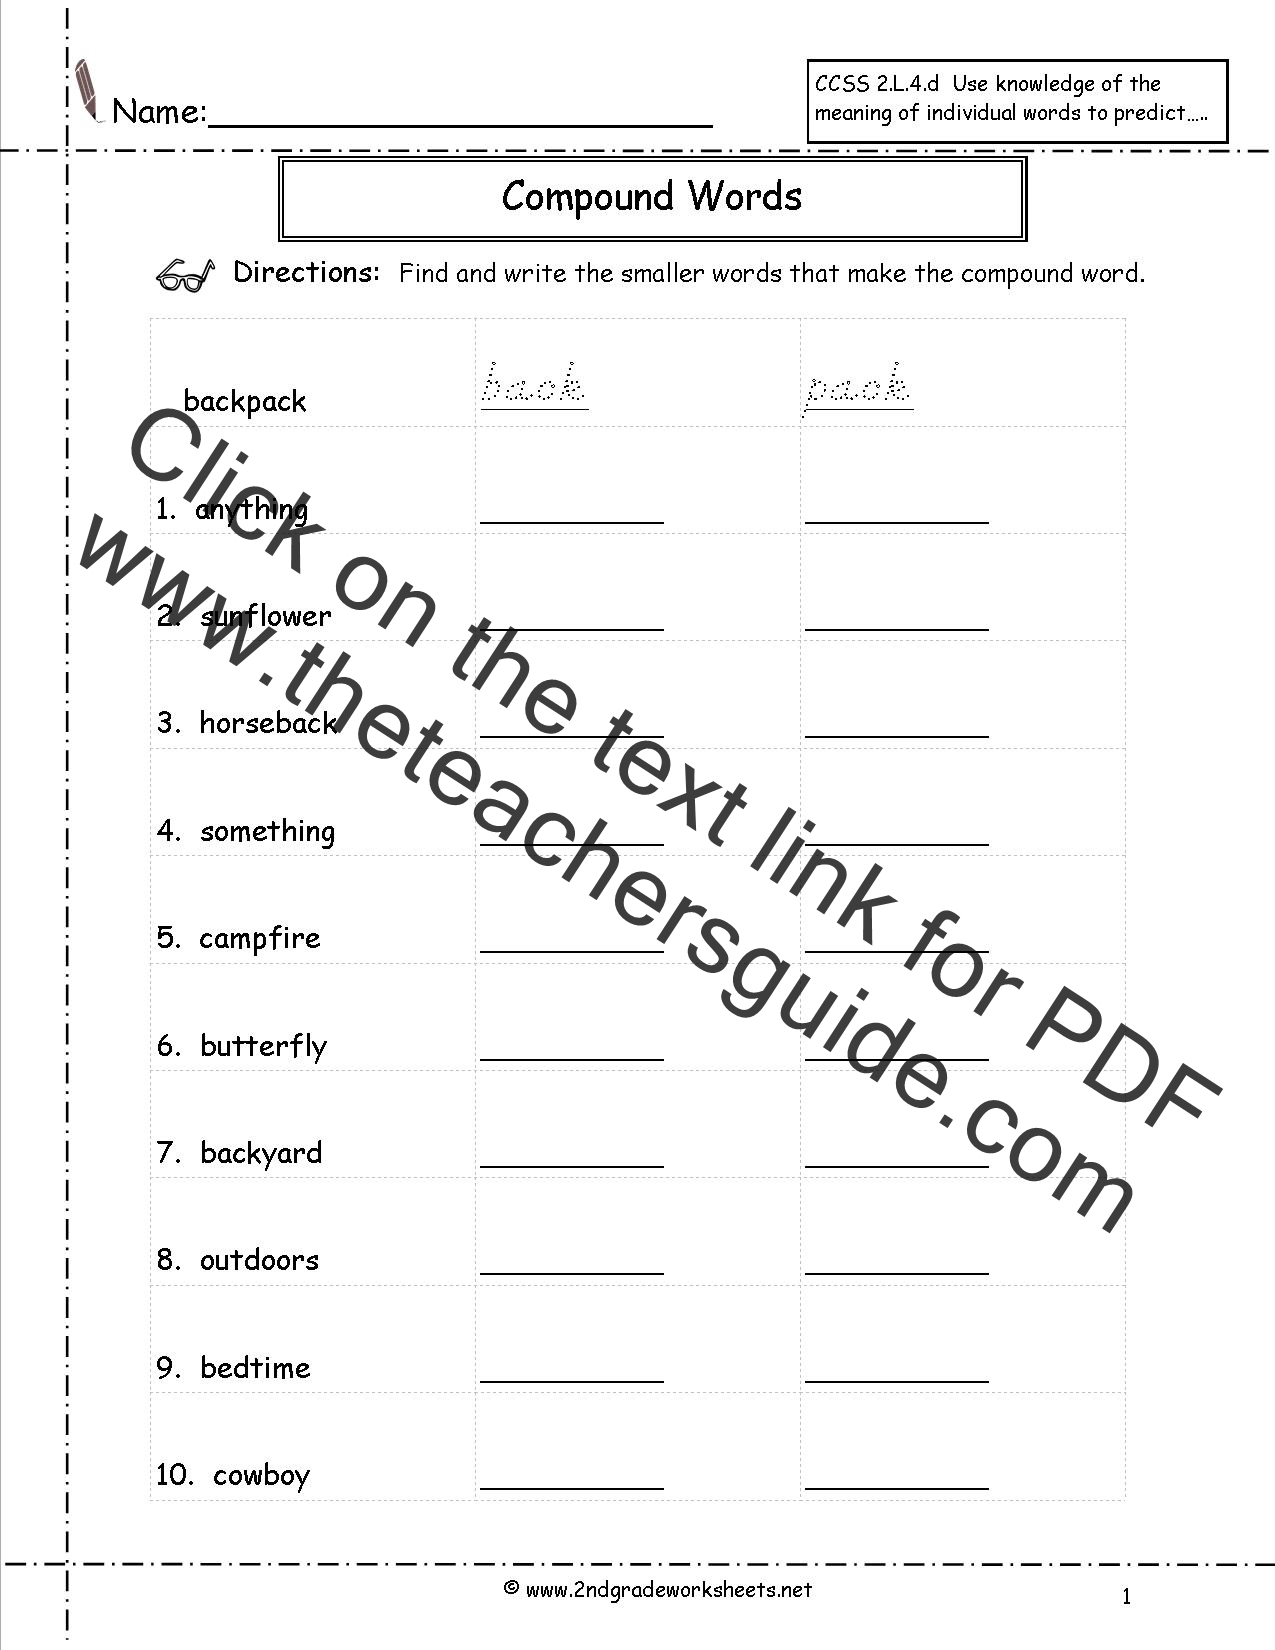 Language Worksheets Printable : Free language grammar worksheets and printouts